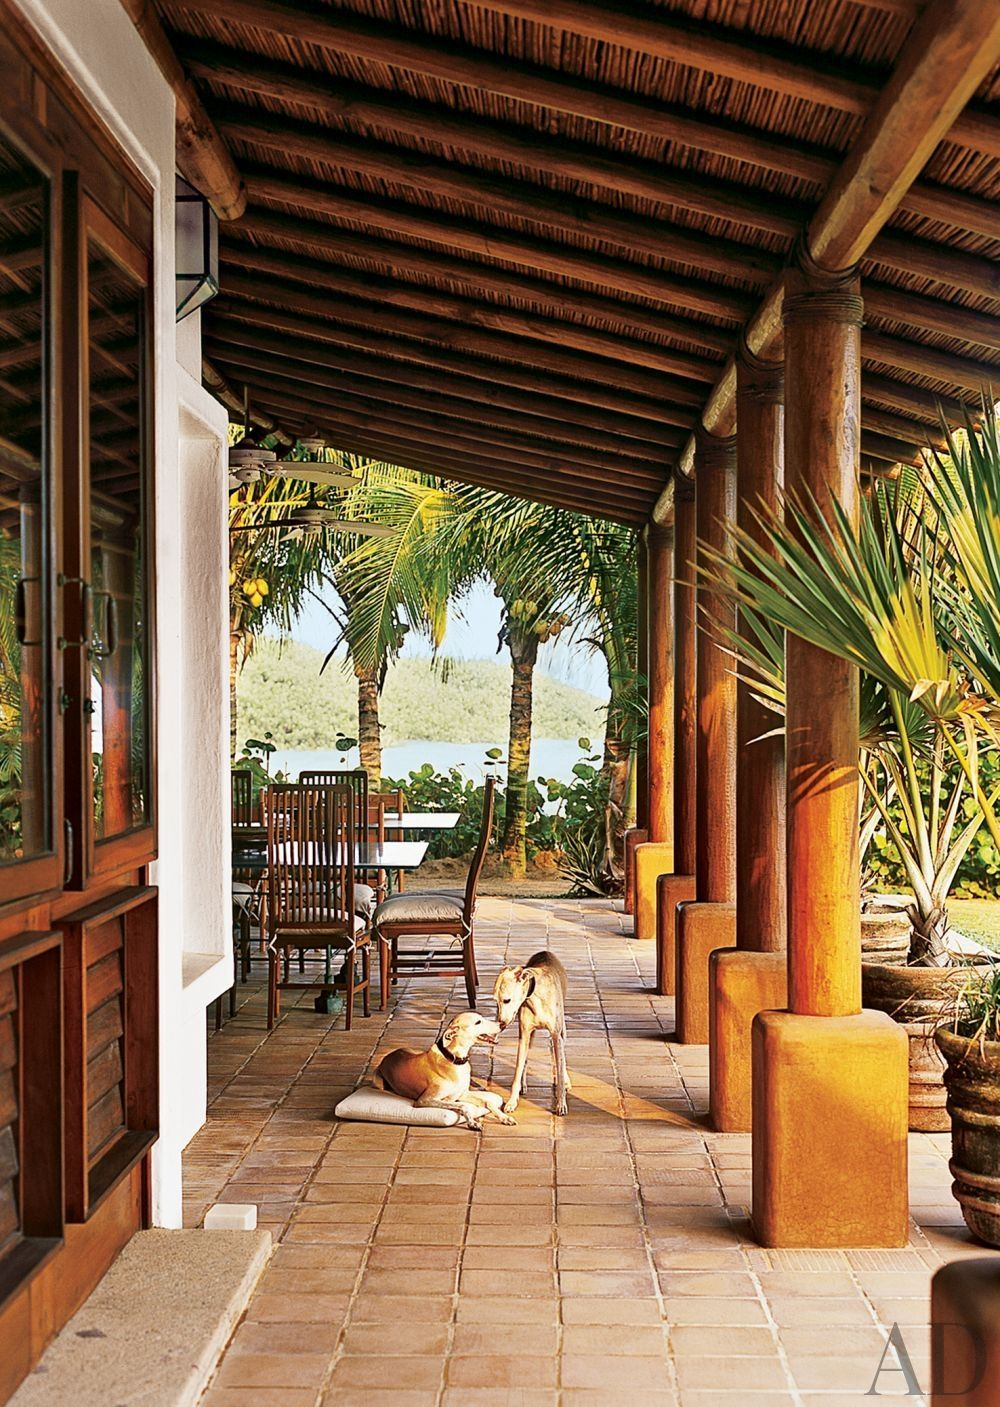 Superb Exotic Outdoor Space By Marco Aldaco In Acapulco, Mexico Pictures